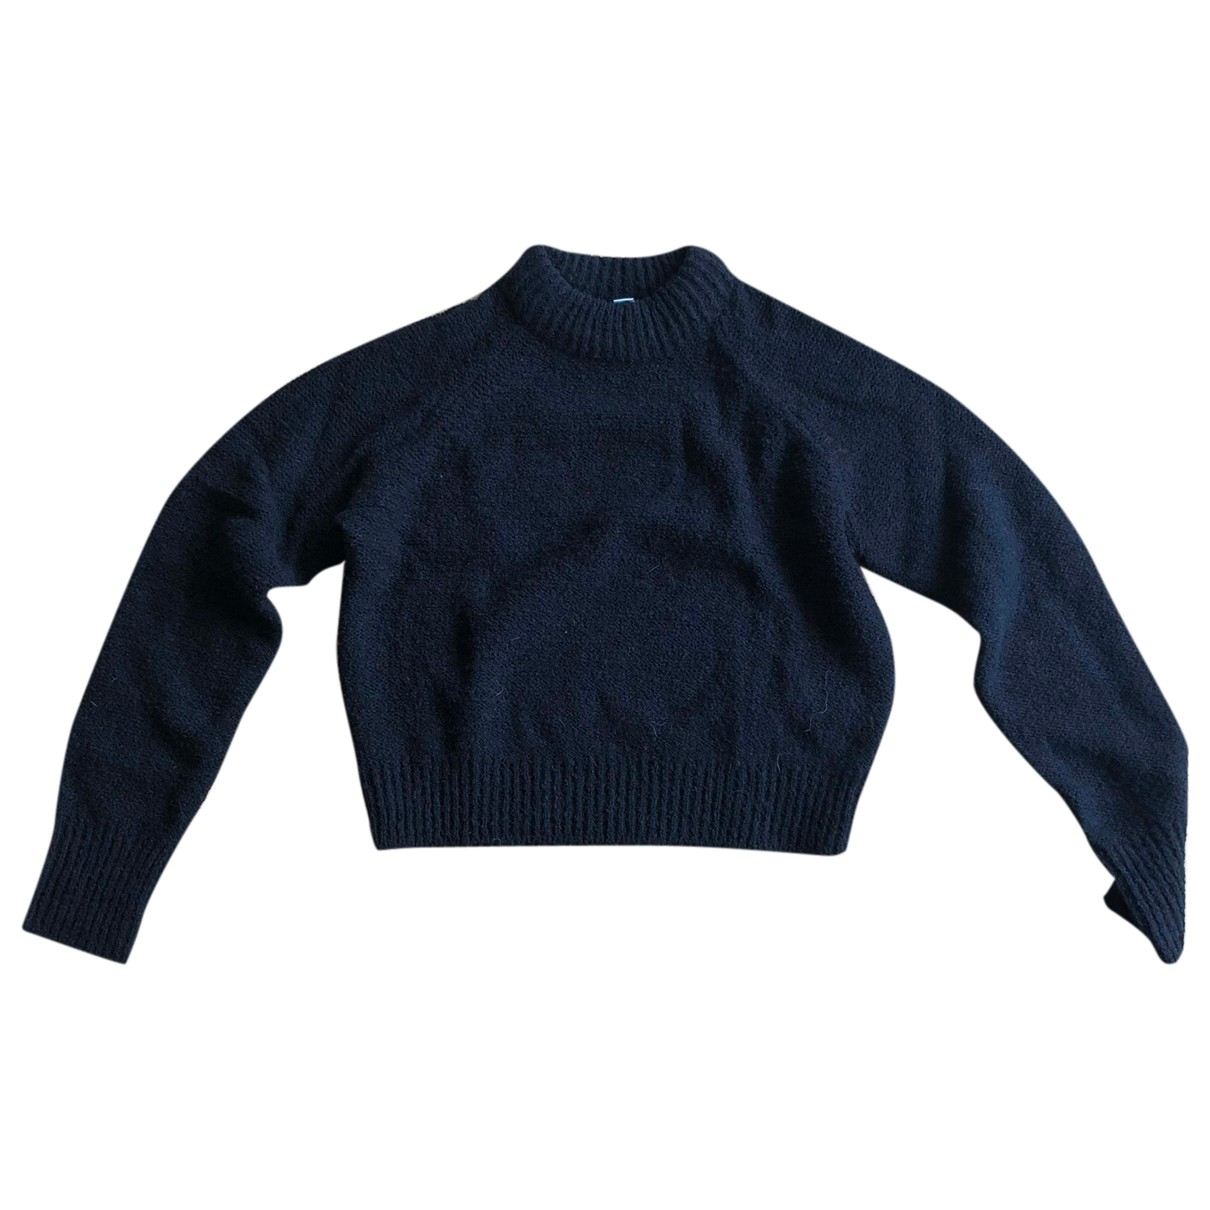 Lemaire X Uniqlo \N Pullover in  Schwarz Wolle